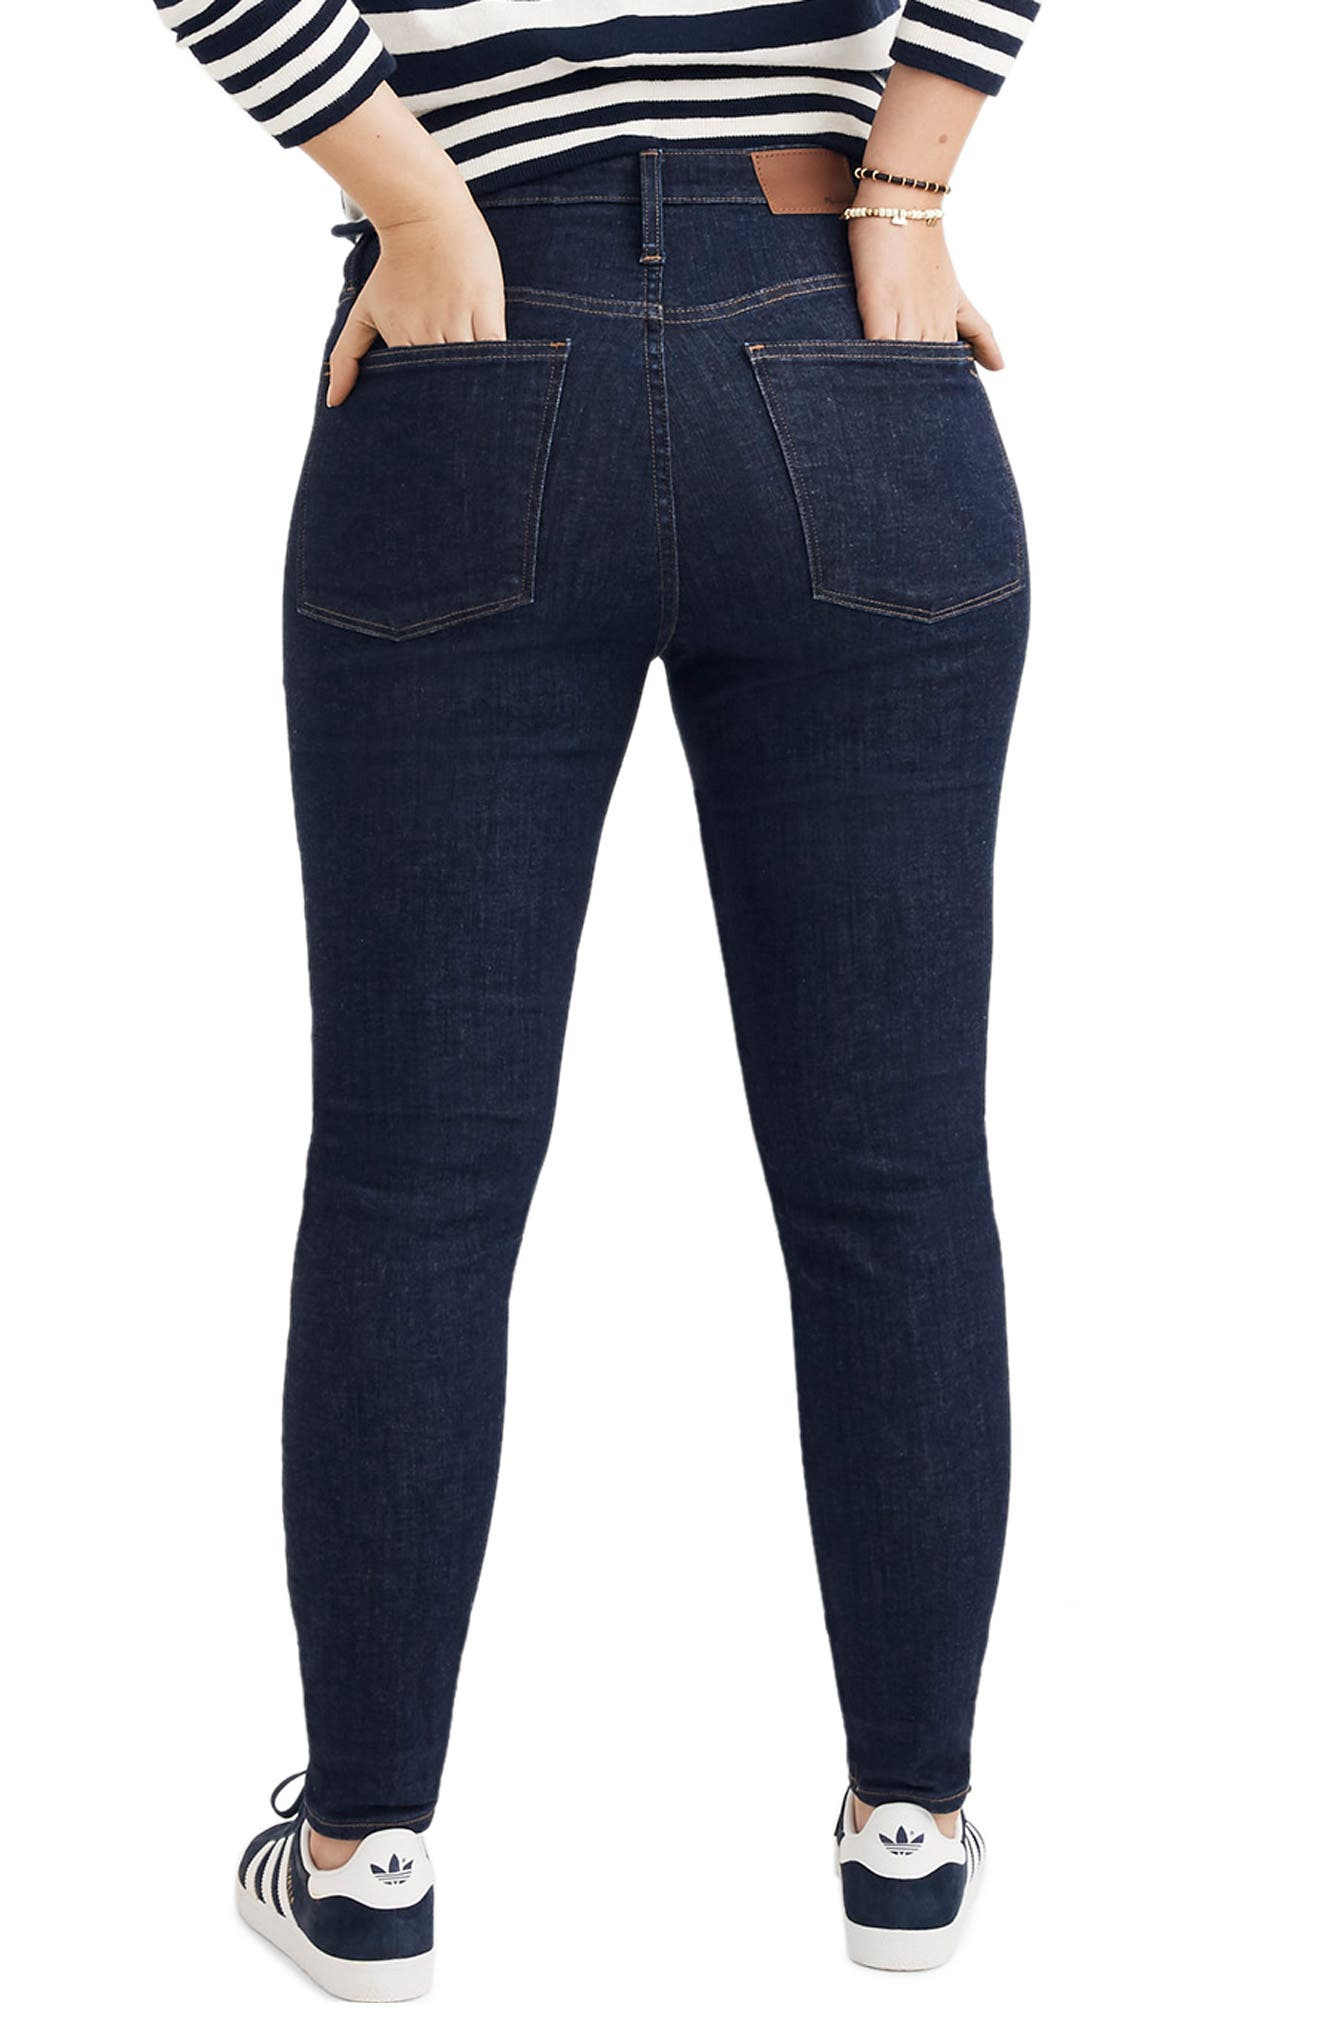 Curvy High Waist Skinny Jeans,                             Alternate thumbnail 8, color,                             LUCILLE WASH